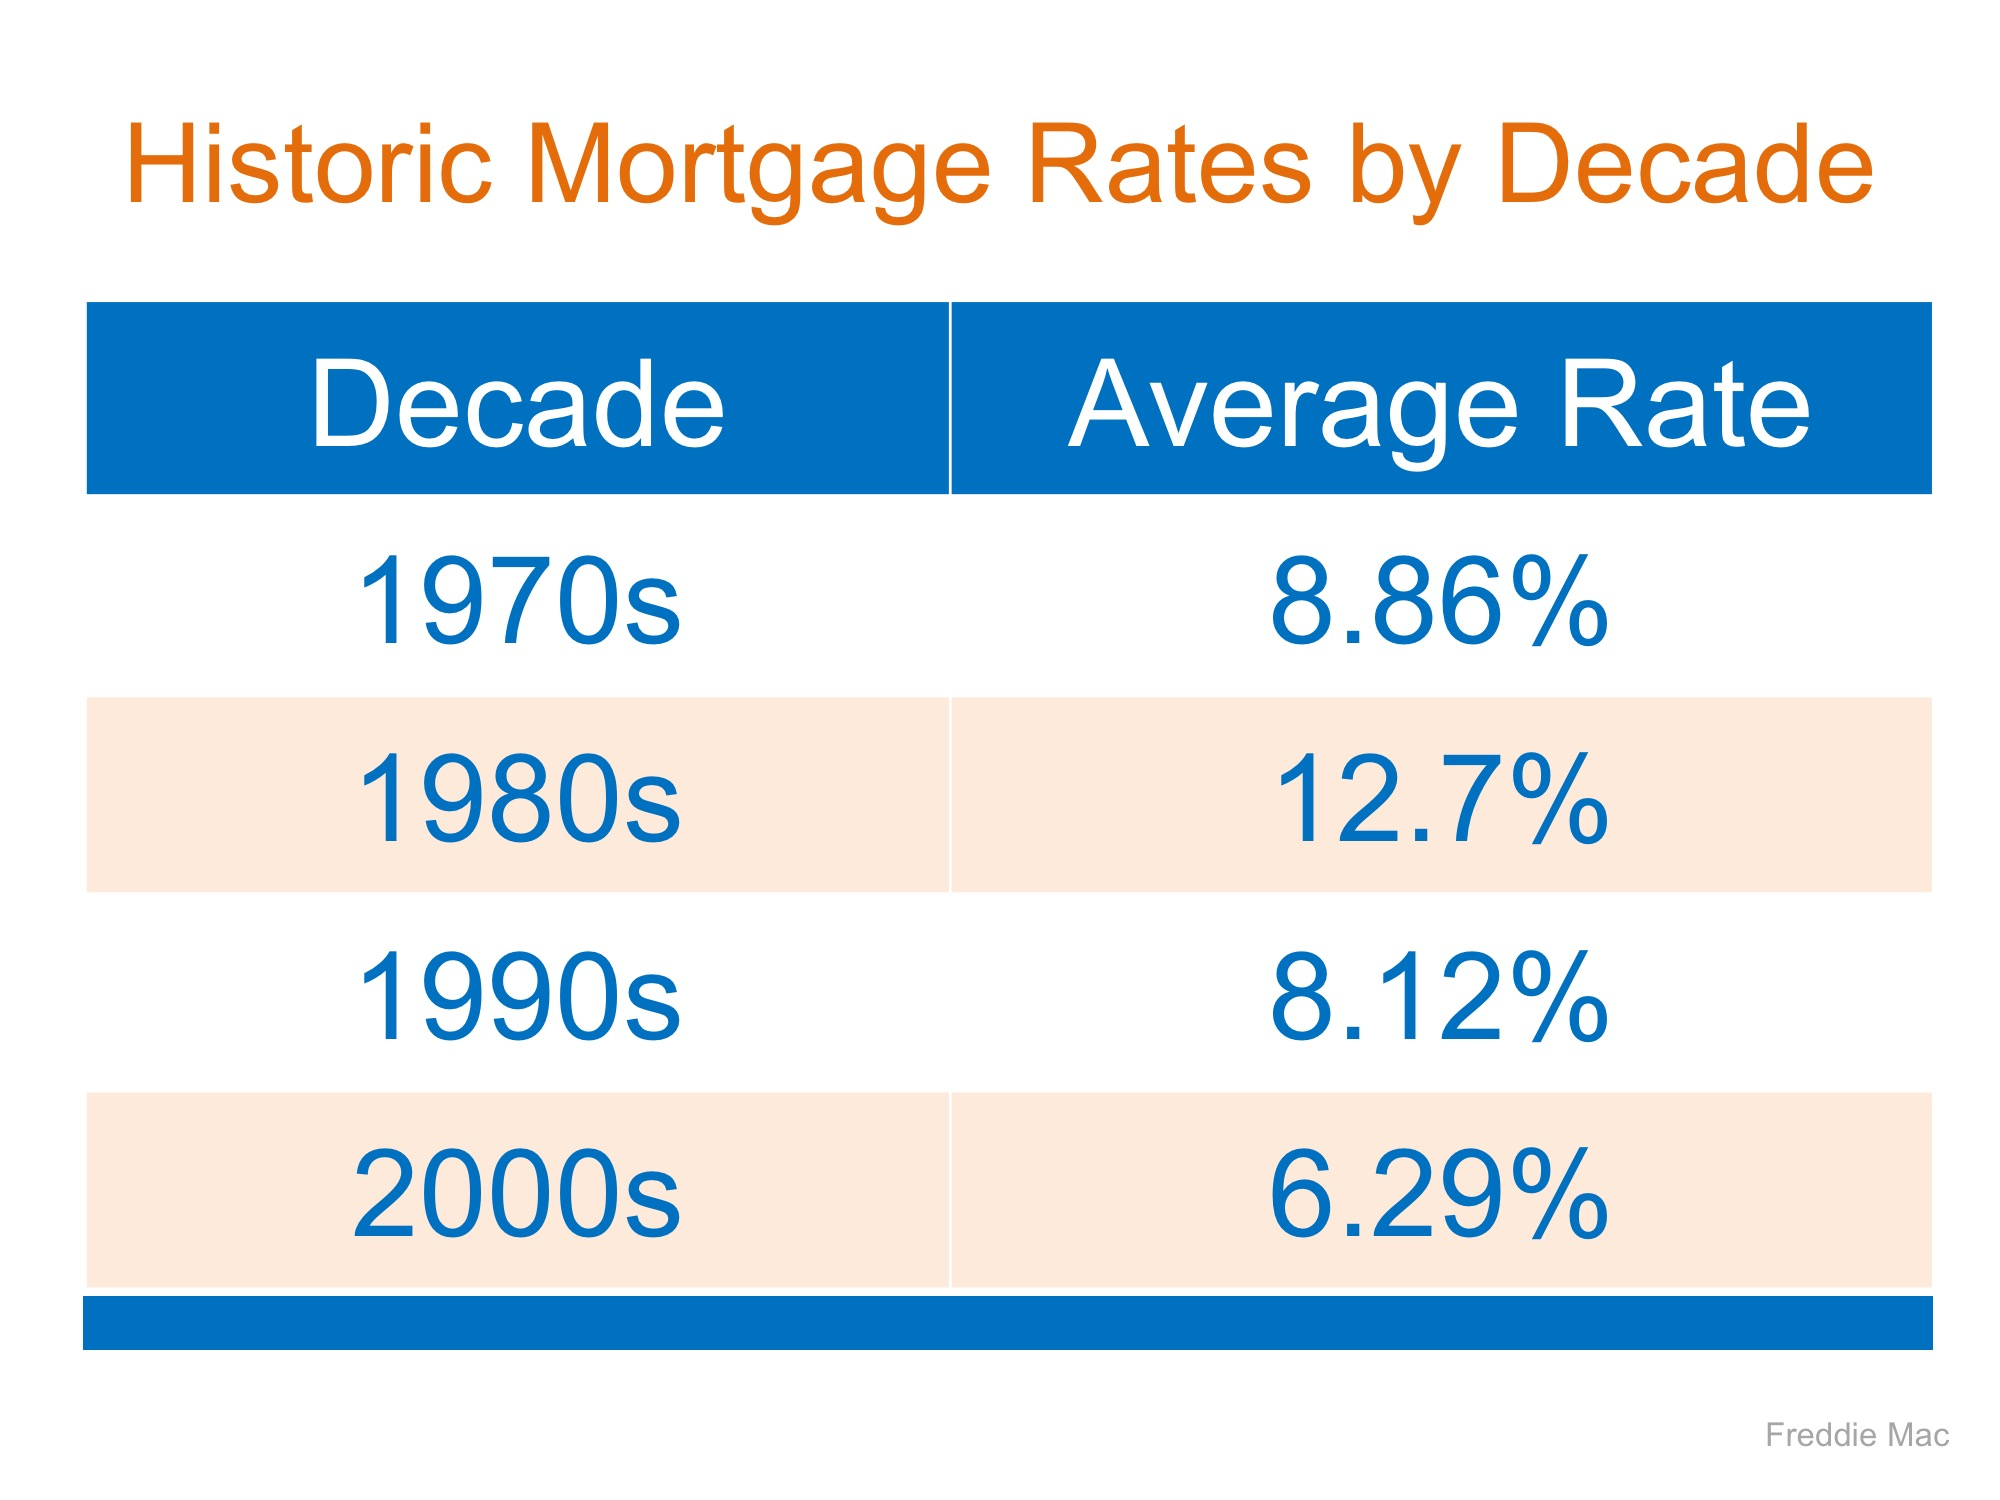 Mortgage Interest Rates Are Going Up? Should I Wait to Buy? | MyKCM